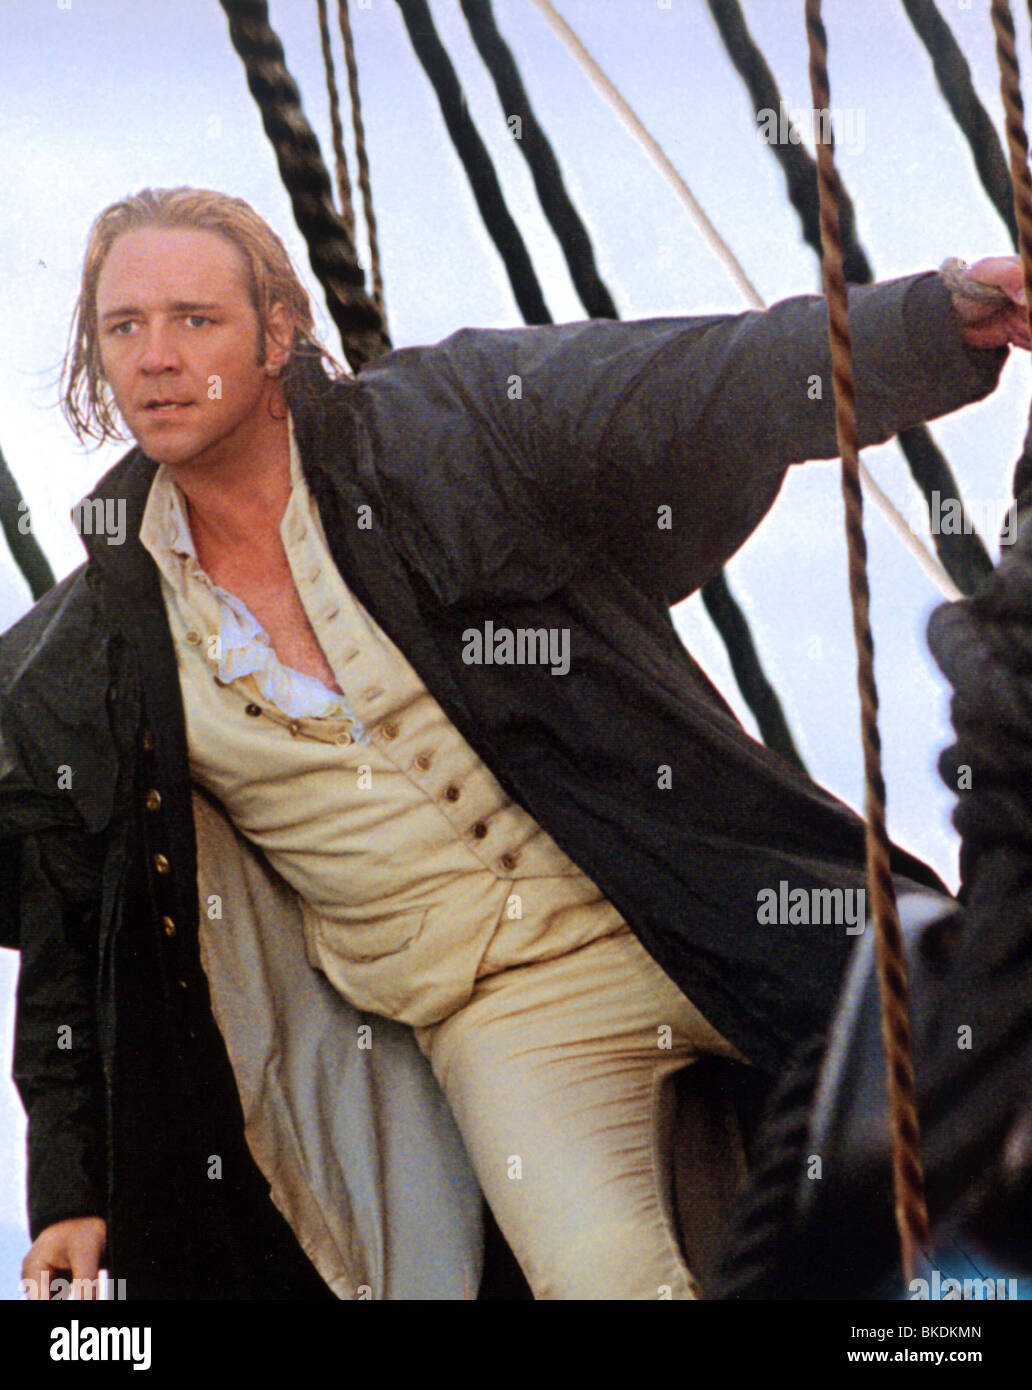 MASTER AND COMMANDER: THE FAR SIDE OF THE WORLD (2003) RUSSELL CROWE MACO 003FOH - Stock Image